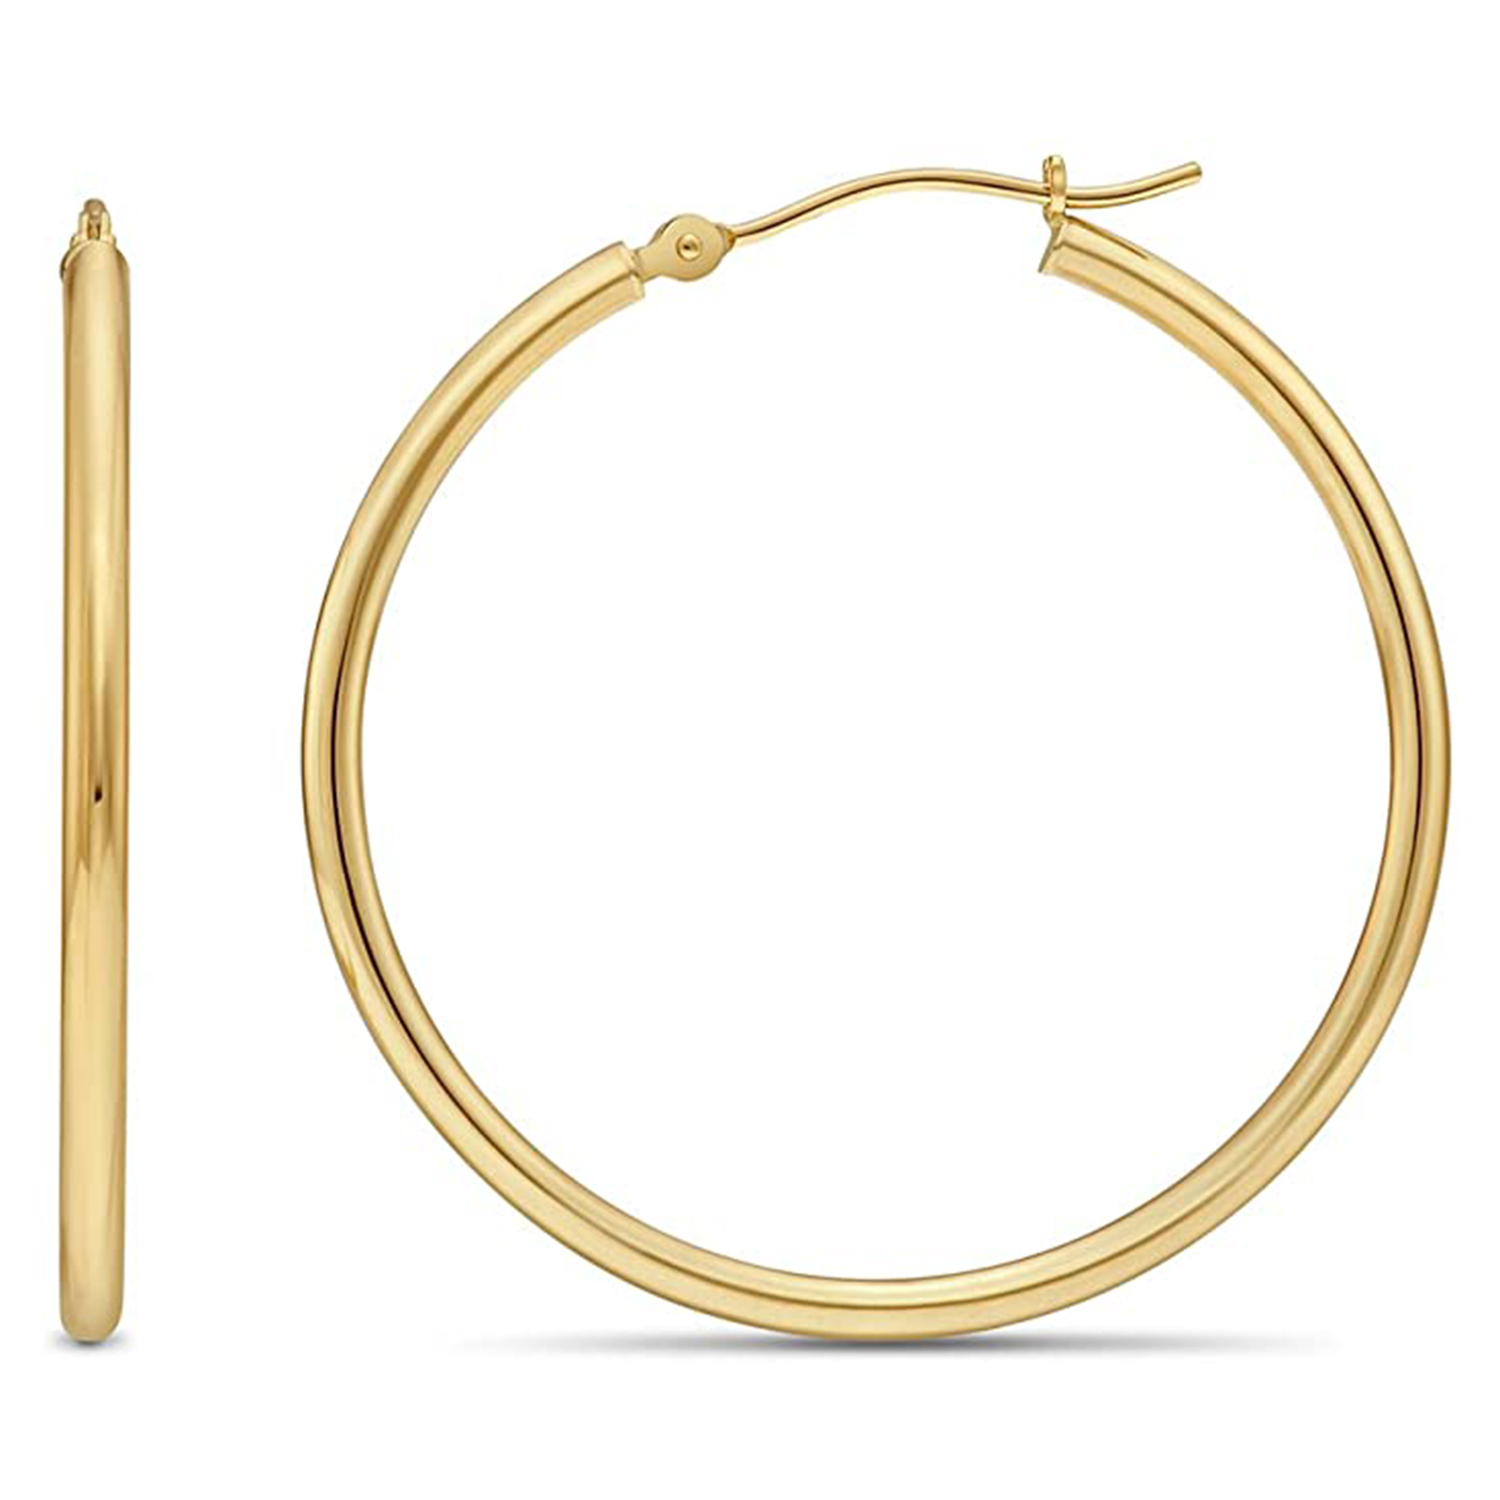 14k Yellow Gold Classic Shiny Polished Round Hoop Earrings